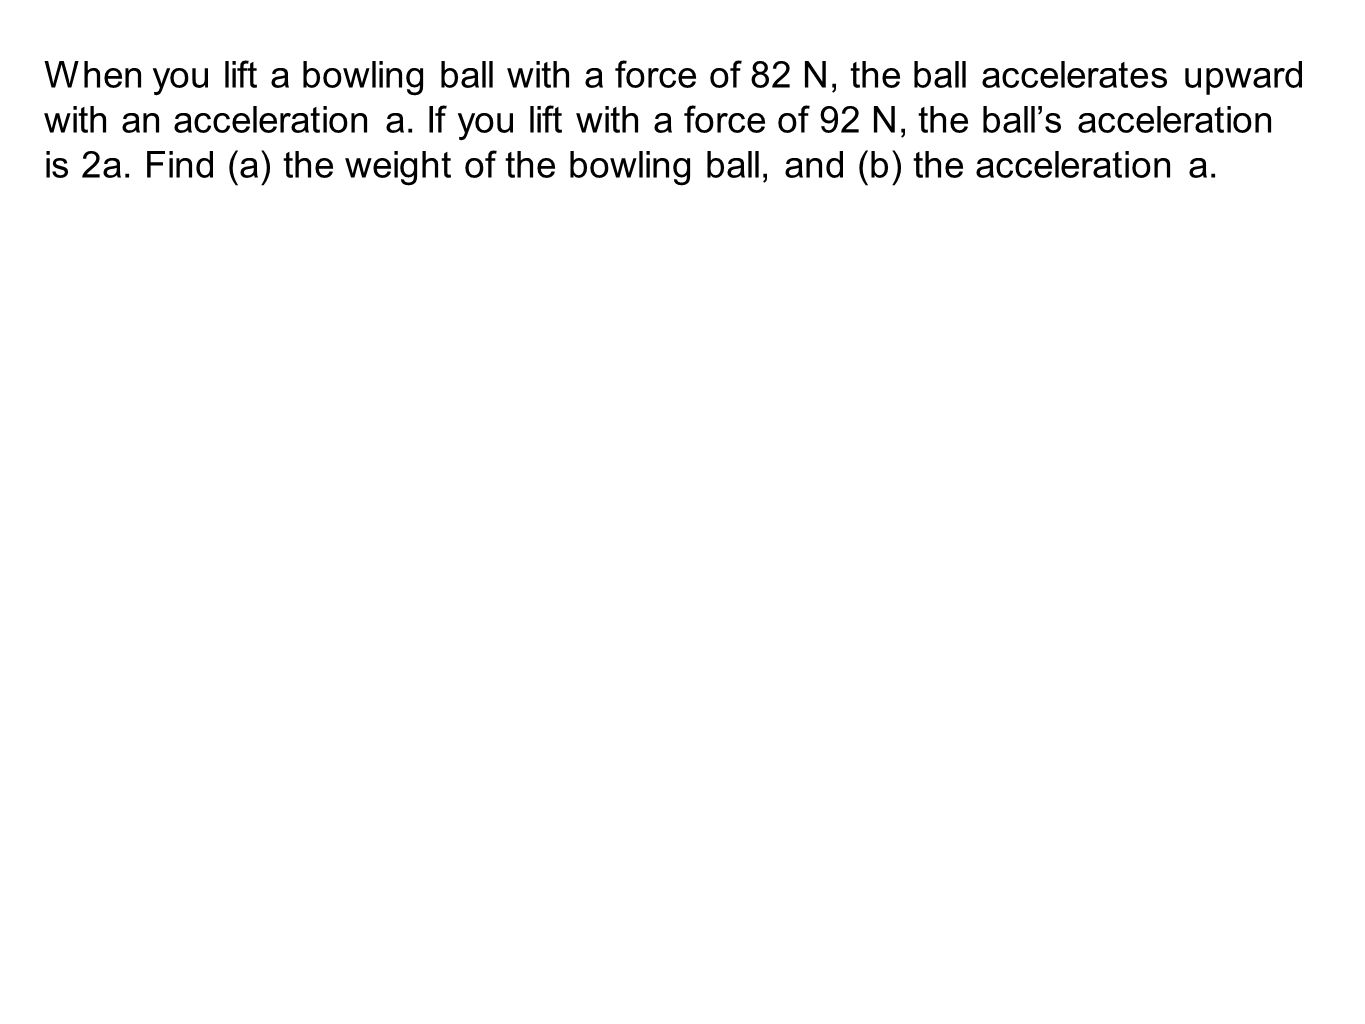 When you lift a bowling ball with a force of 82 N, the ball accelerates upward with an acceleration a.